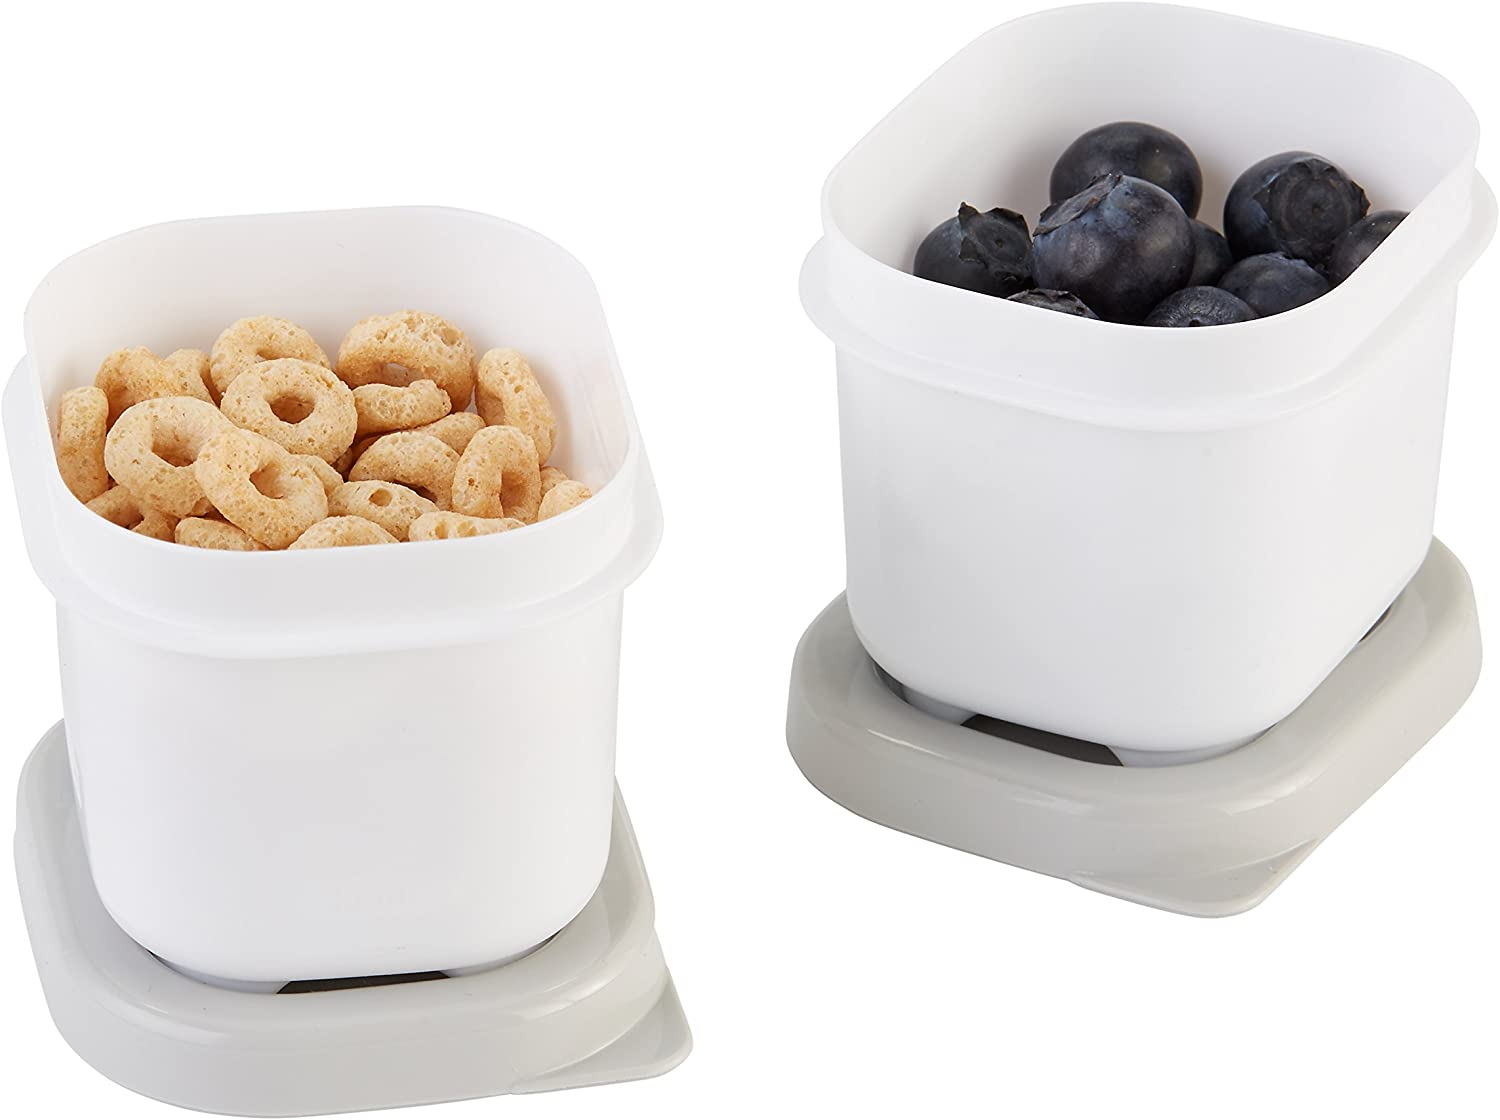 Rubbermaid Fasten + Go Snack Containers, 0.5 Cup, Smoke Gray, Pack of 2